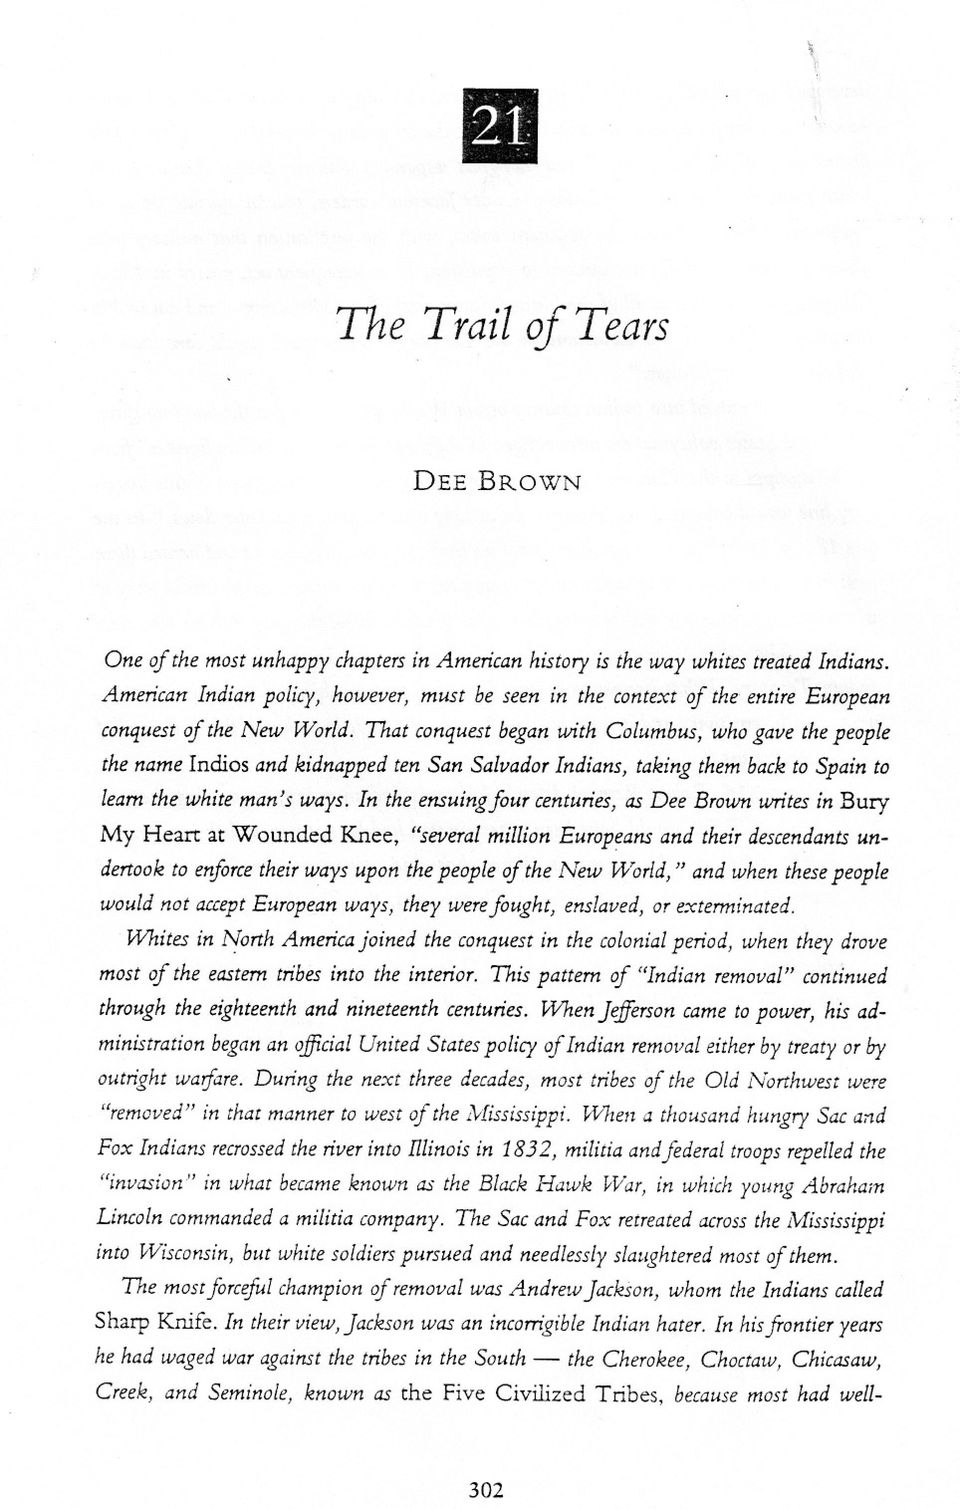 Worksheets Trail Of Tears Worksheet the trail of tears dee brown my heart at wounded knee several that conquest began with columbus who gave people name indios and kidnapped ten